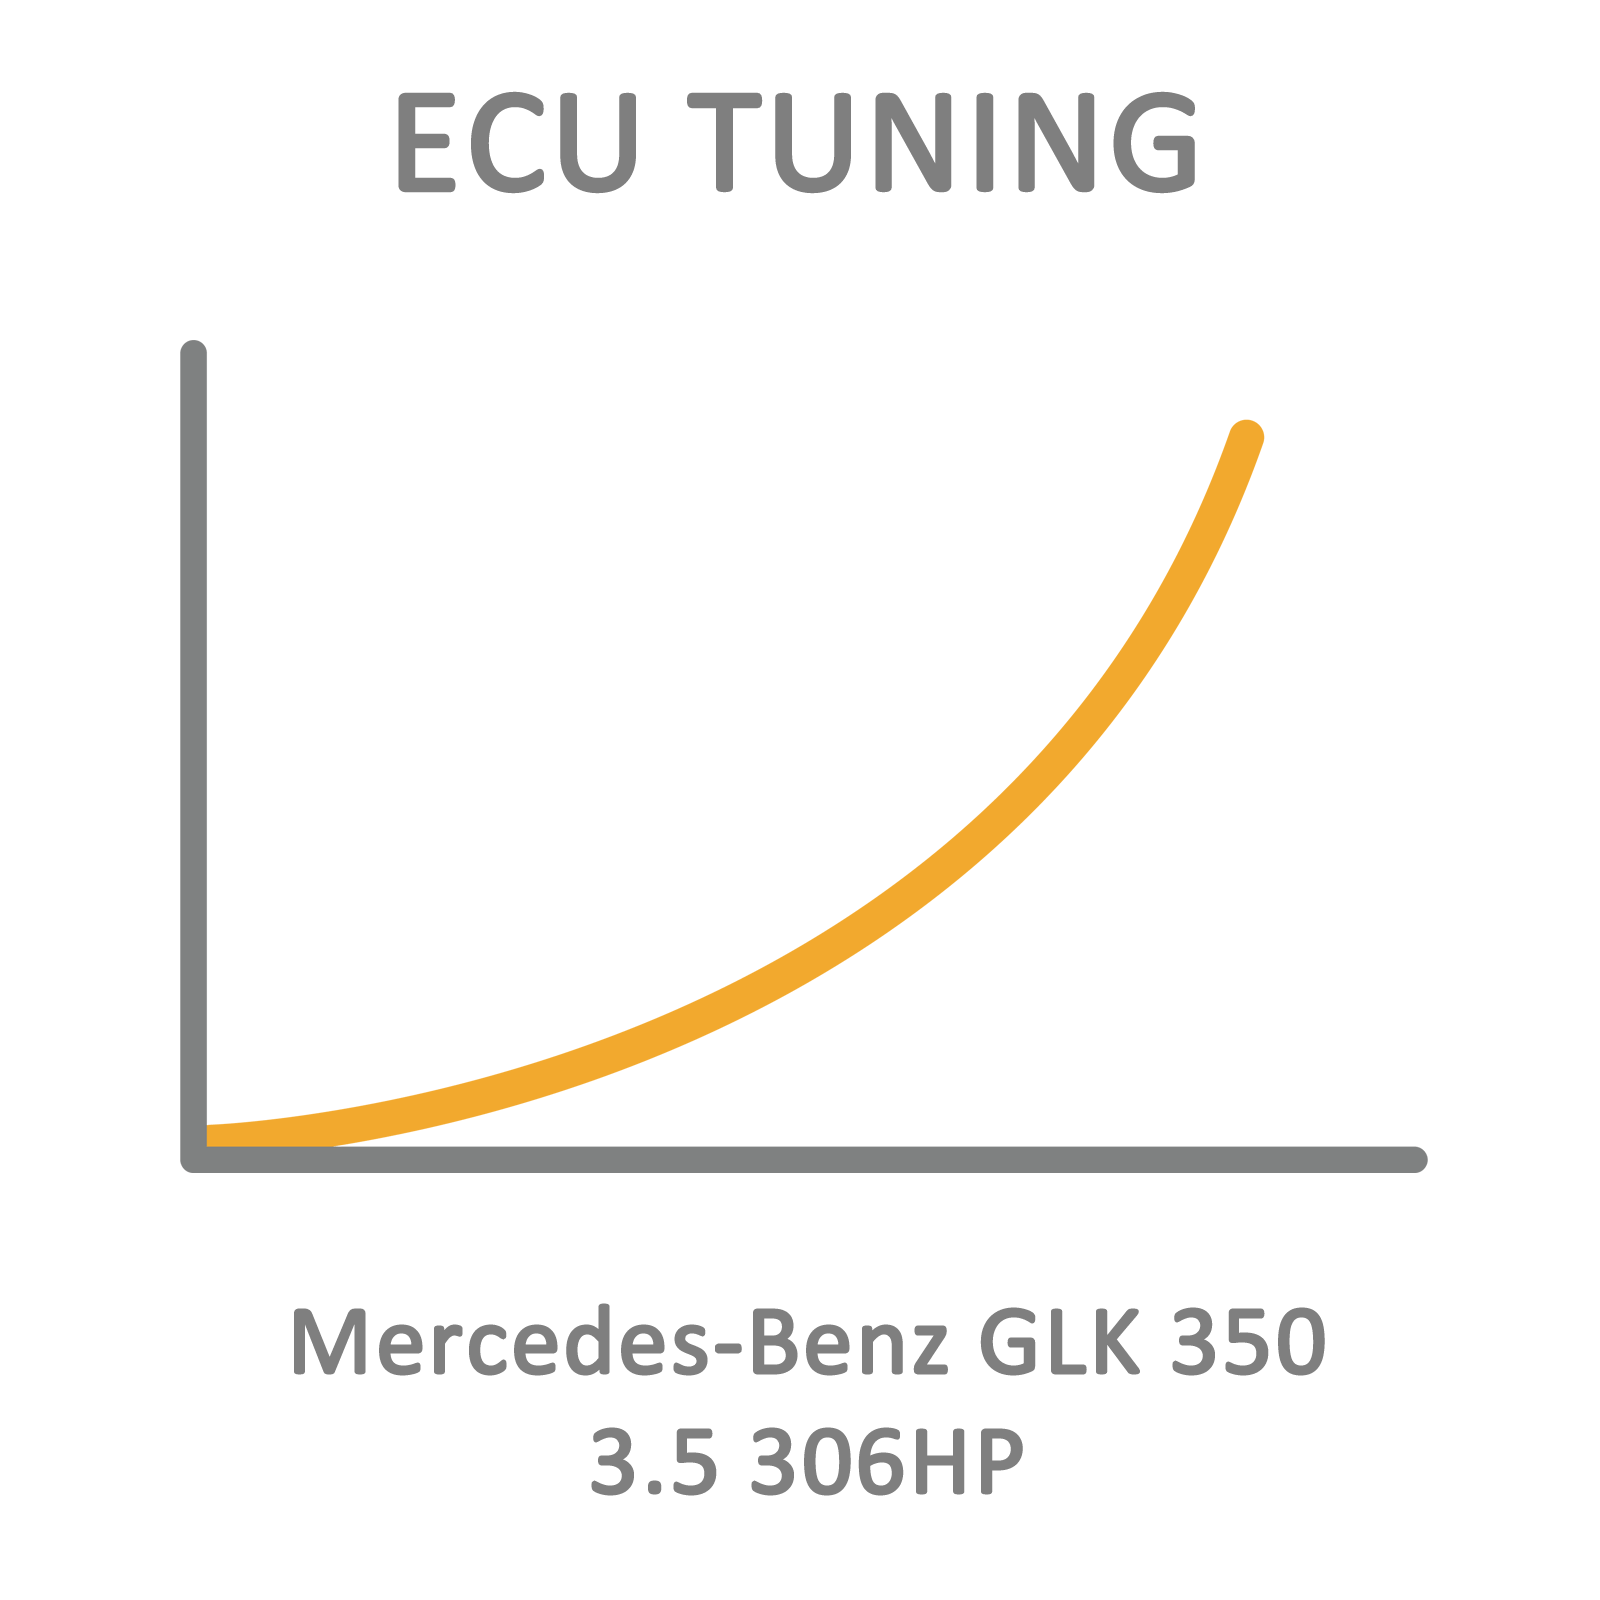 Mercedes-Benz GLK 350 3.5 306HP ECU Tuning Remapping